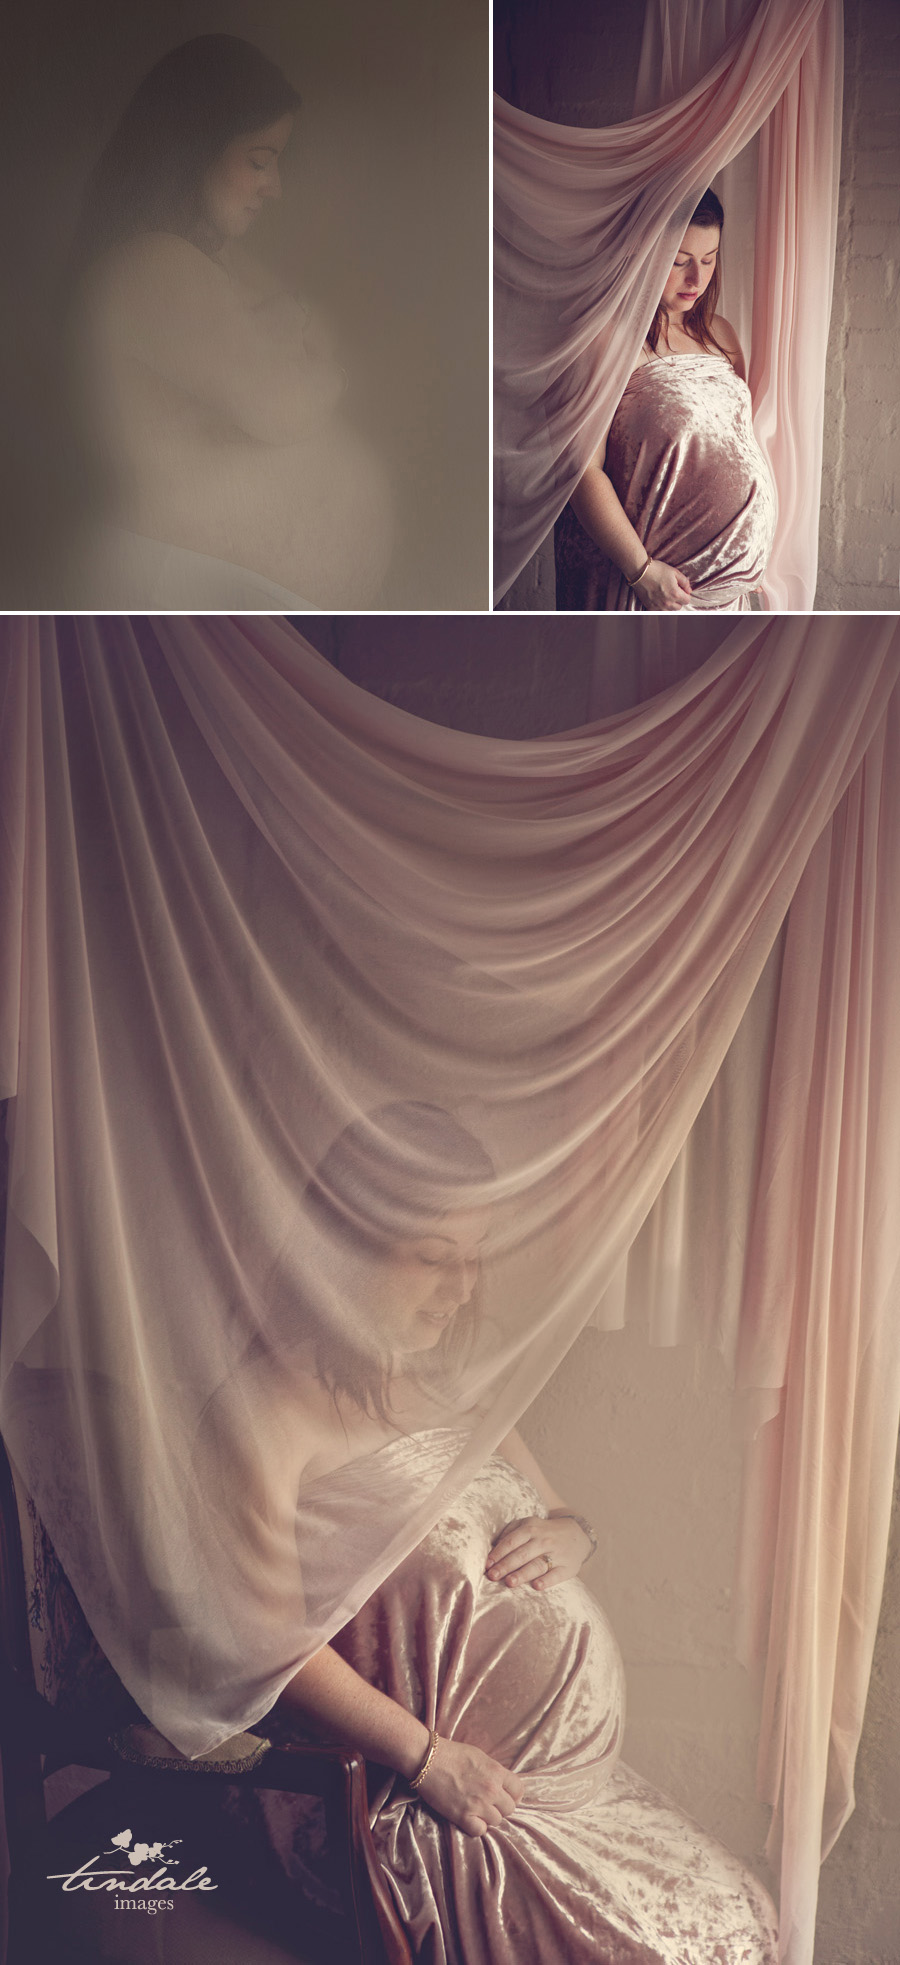 soft and pretty - sutherland shire maternity photographer